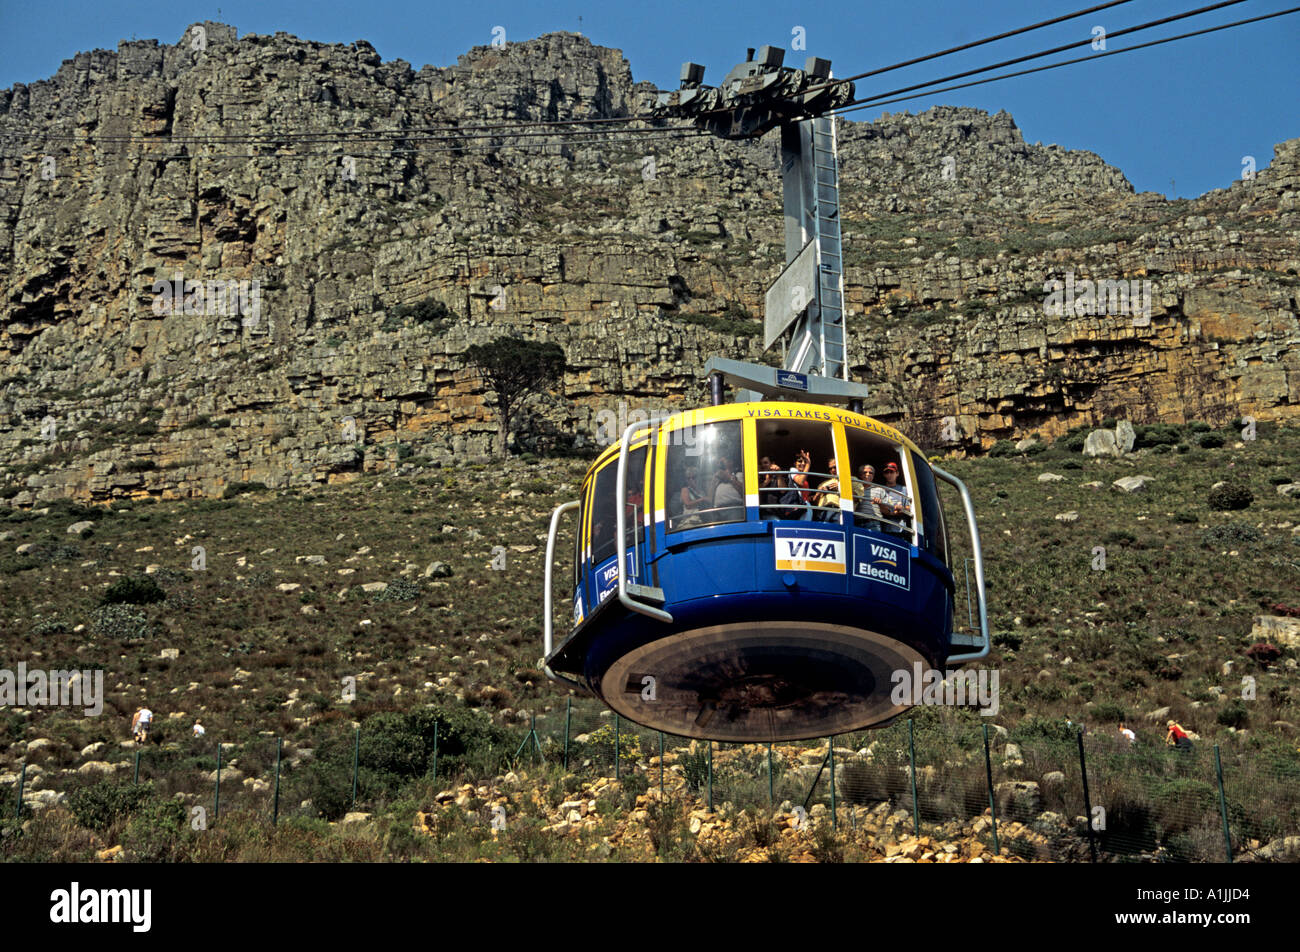 CAPE TOWN SOUTH AFRICA October The Table Mountain Cable Car which rotates during the journey allowing visitors all round views - Stock Image